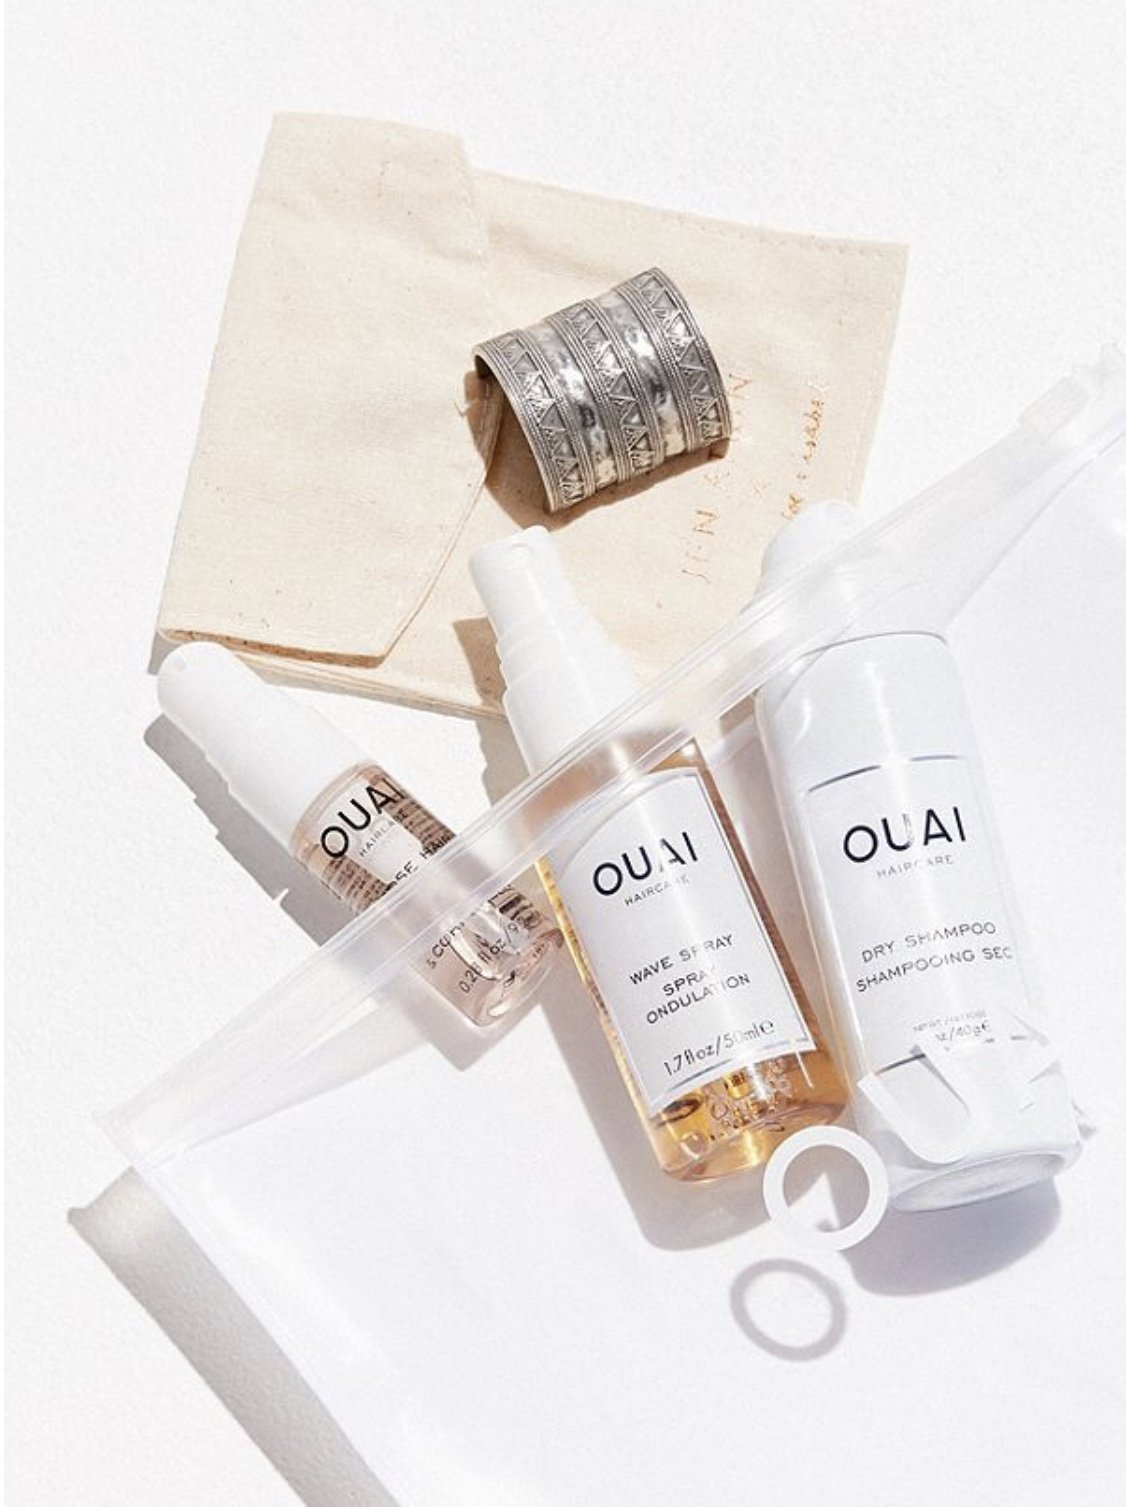 Ouai Desert OUAIsis Festival Kit: Rose Hair & Body Oil, Dry Shampoo Foam, Wave Spray, Jen Atkin x Chloe + Isabel Ponytail Piece (Limited Edition) by Ouai (Image #4)